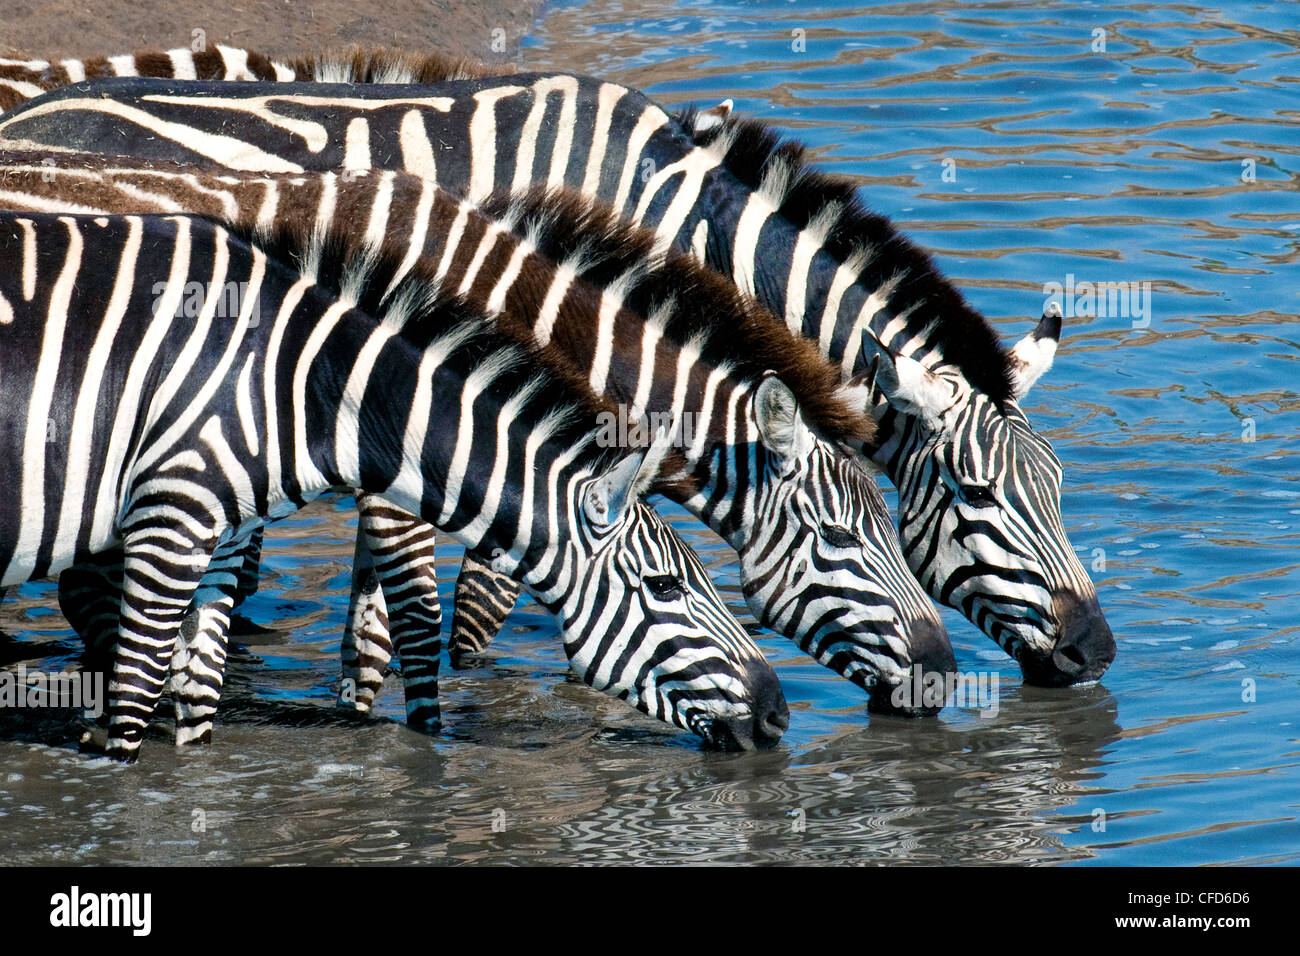 Plains zebras (Equus burchelli) drinking at a temporary river, Masai Mara Reserve, Northern Serengeti Plains, Kenya - Stock Image